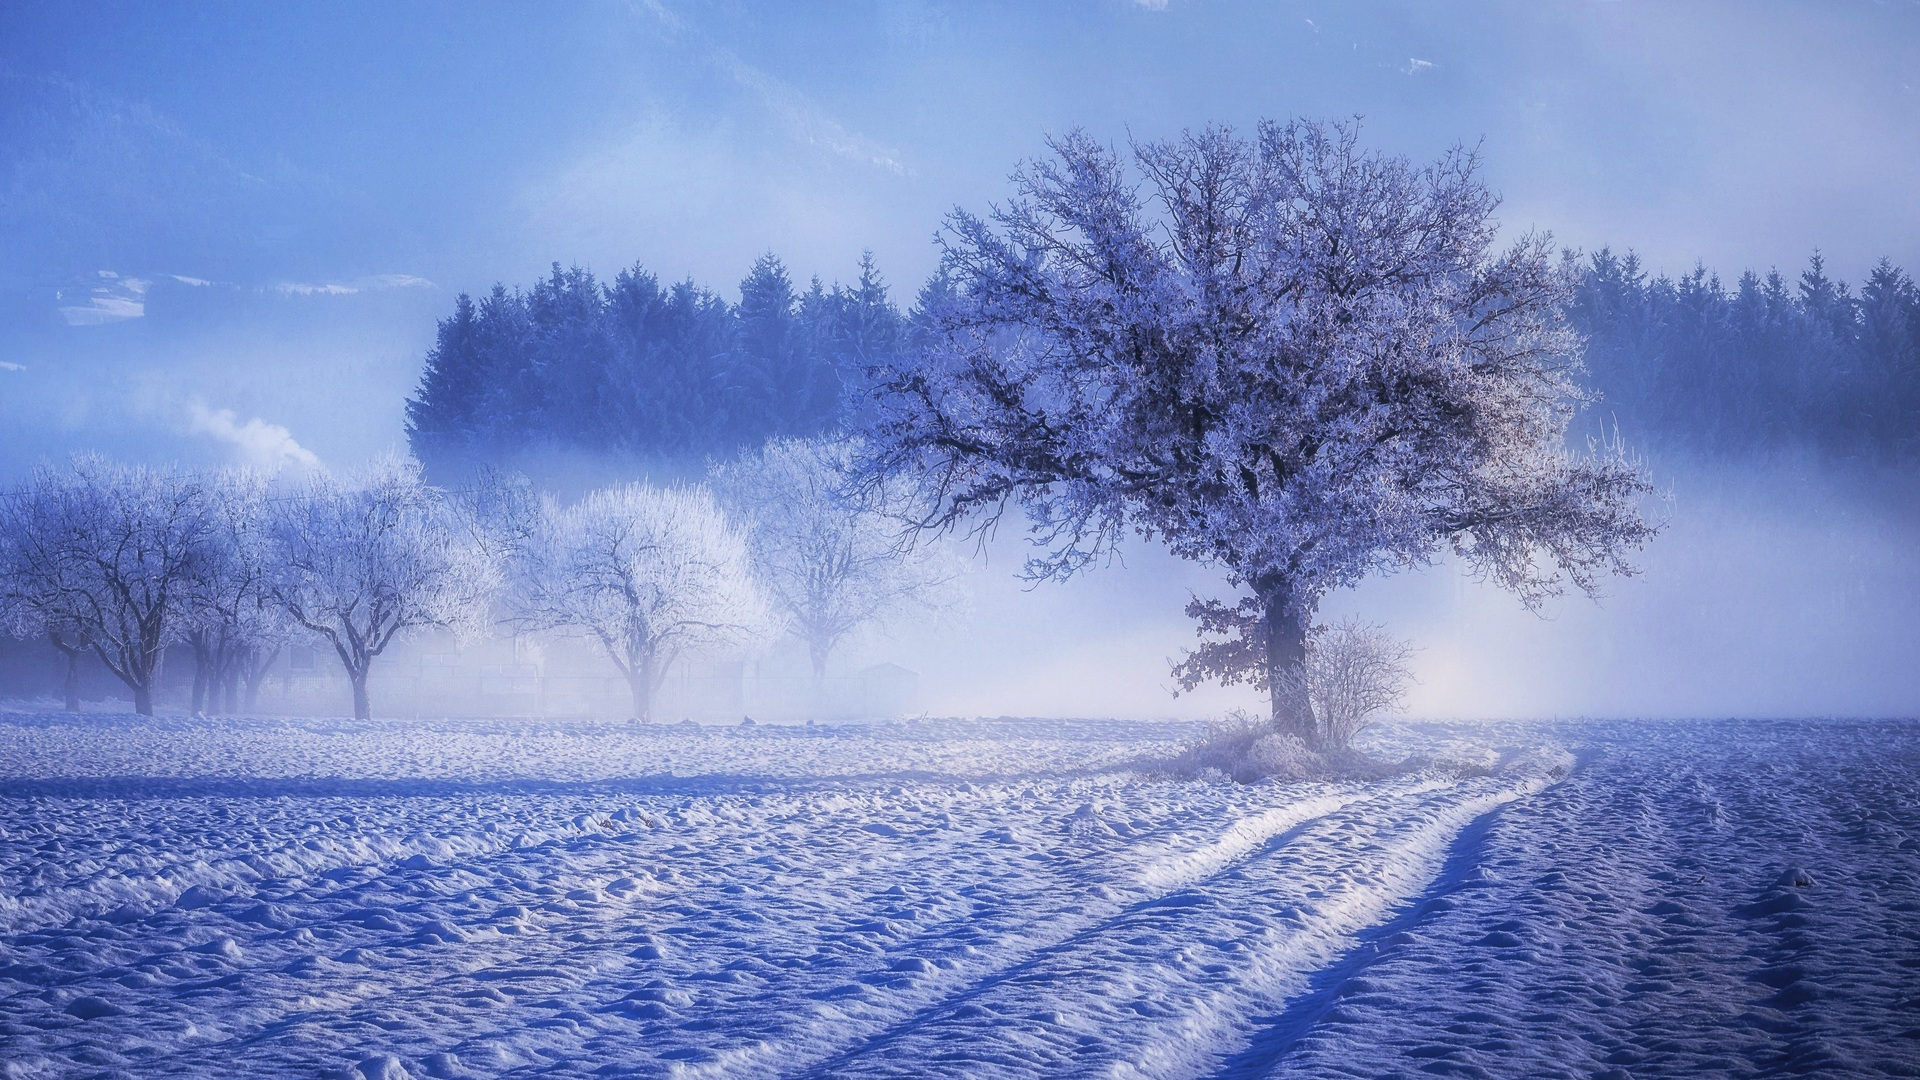 1920x1080 Trees Covered With Snow Fog Landscape Winter 4k